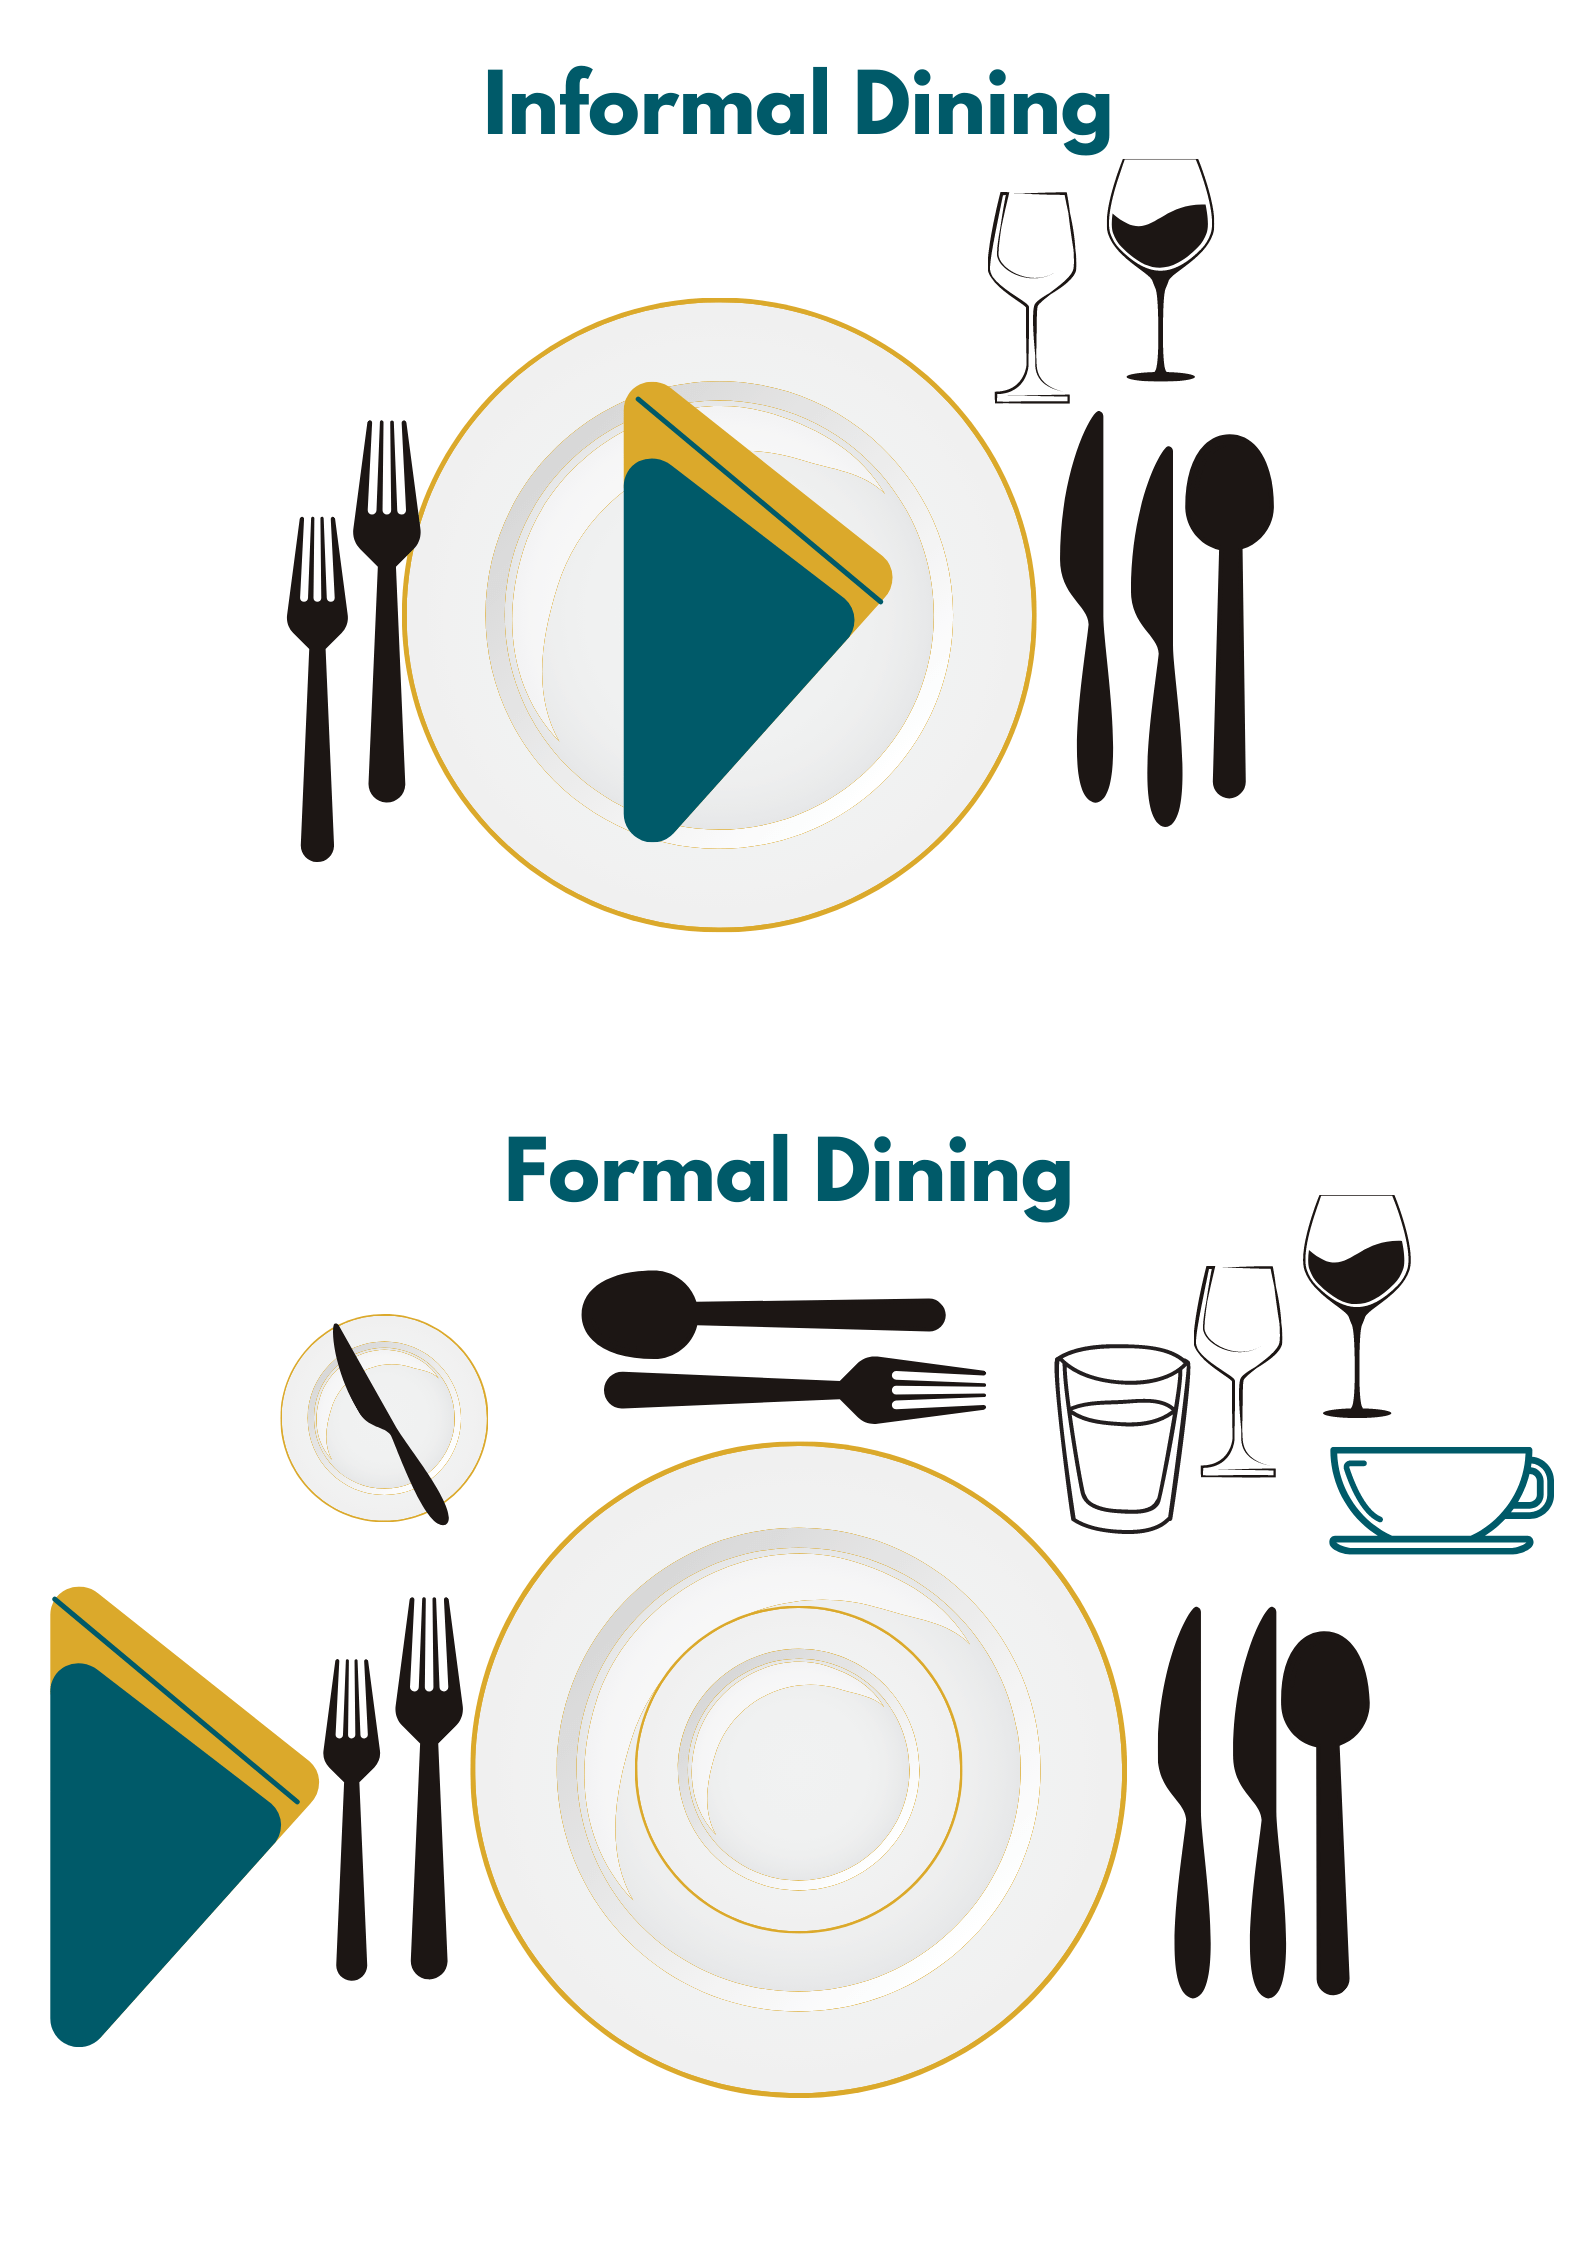 How to set a table for informal/formal dining